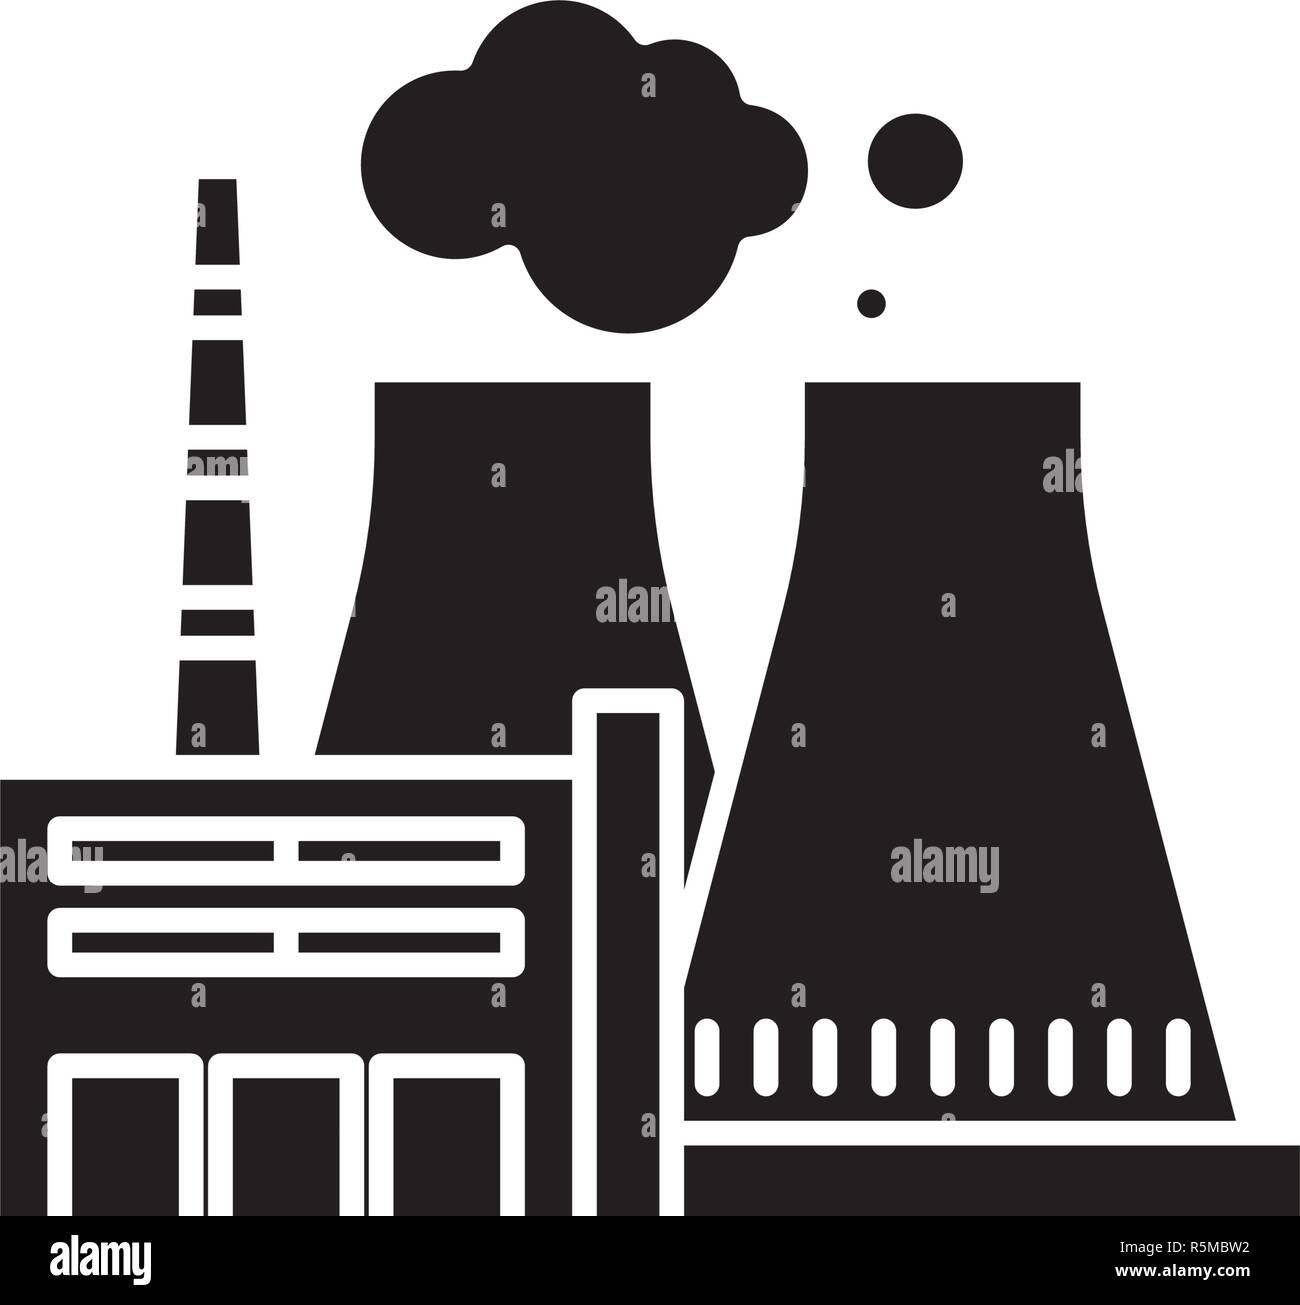 thermal stock vector images alamy Thermal Power Production thermal power plant black icon, vector sign on isolated background thermal power plant concept